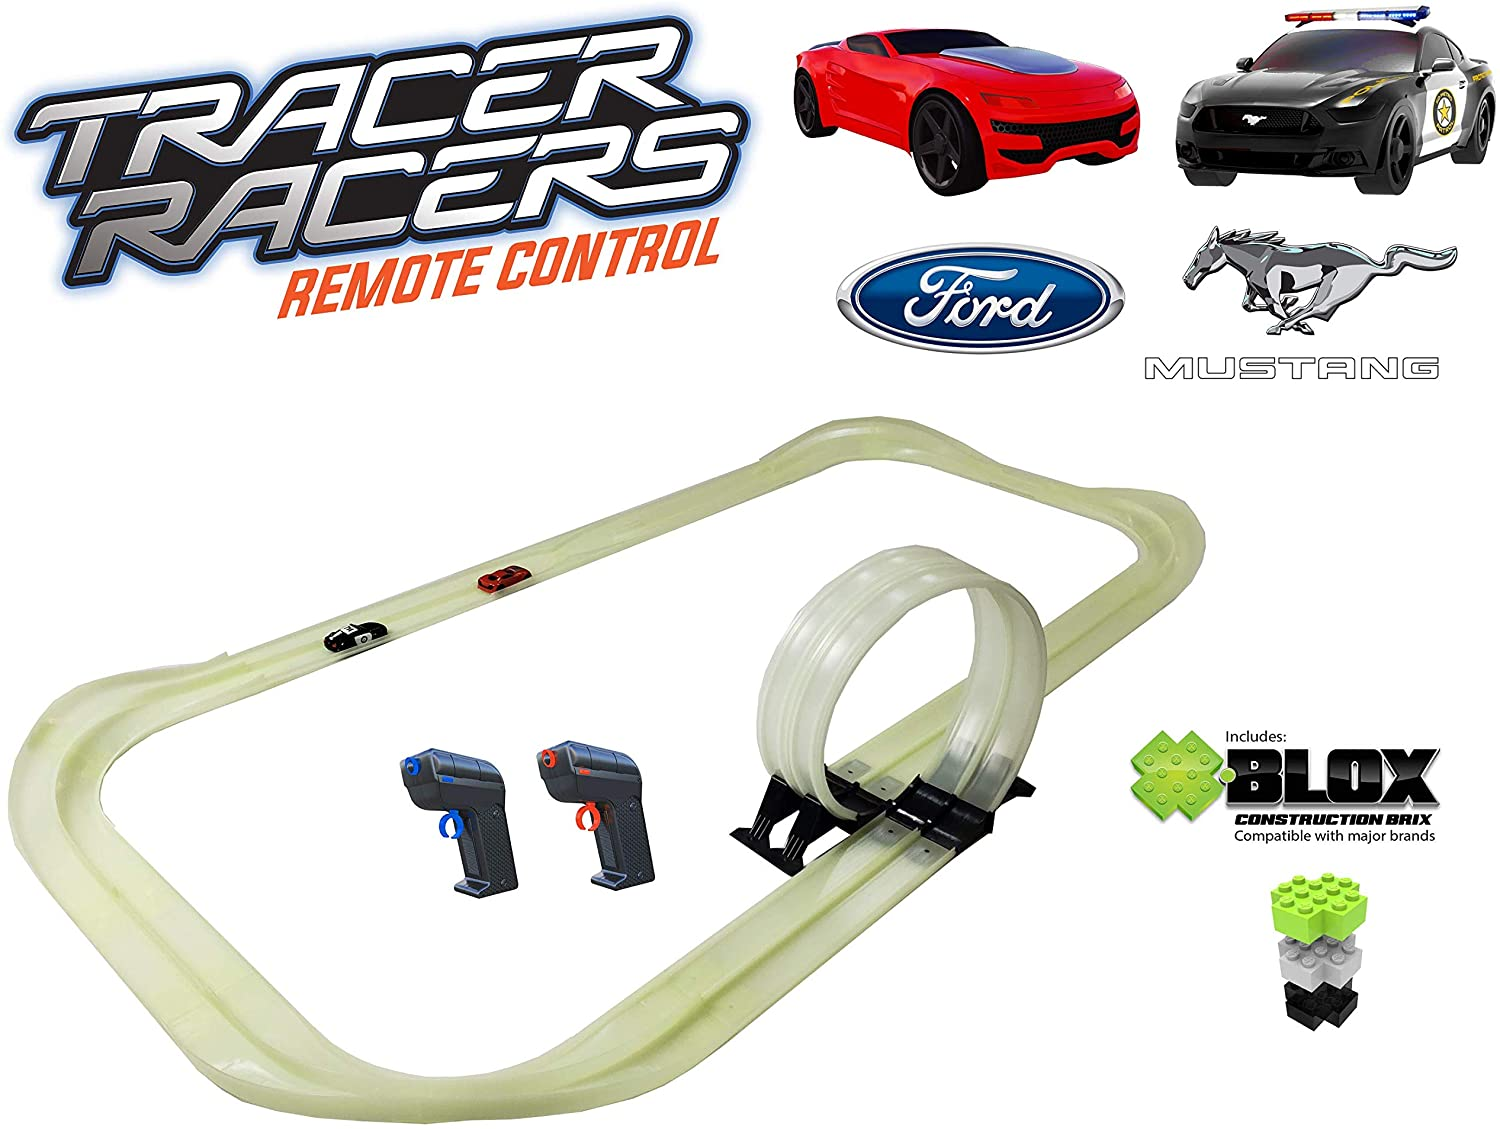 Tracer Racers R/C High Speed Remote Control Police Pursuit Speedway Glow Track Set with Officially Licensed Ford Mustang Police Car